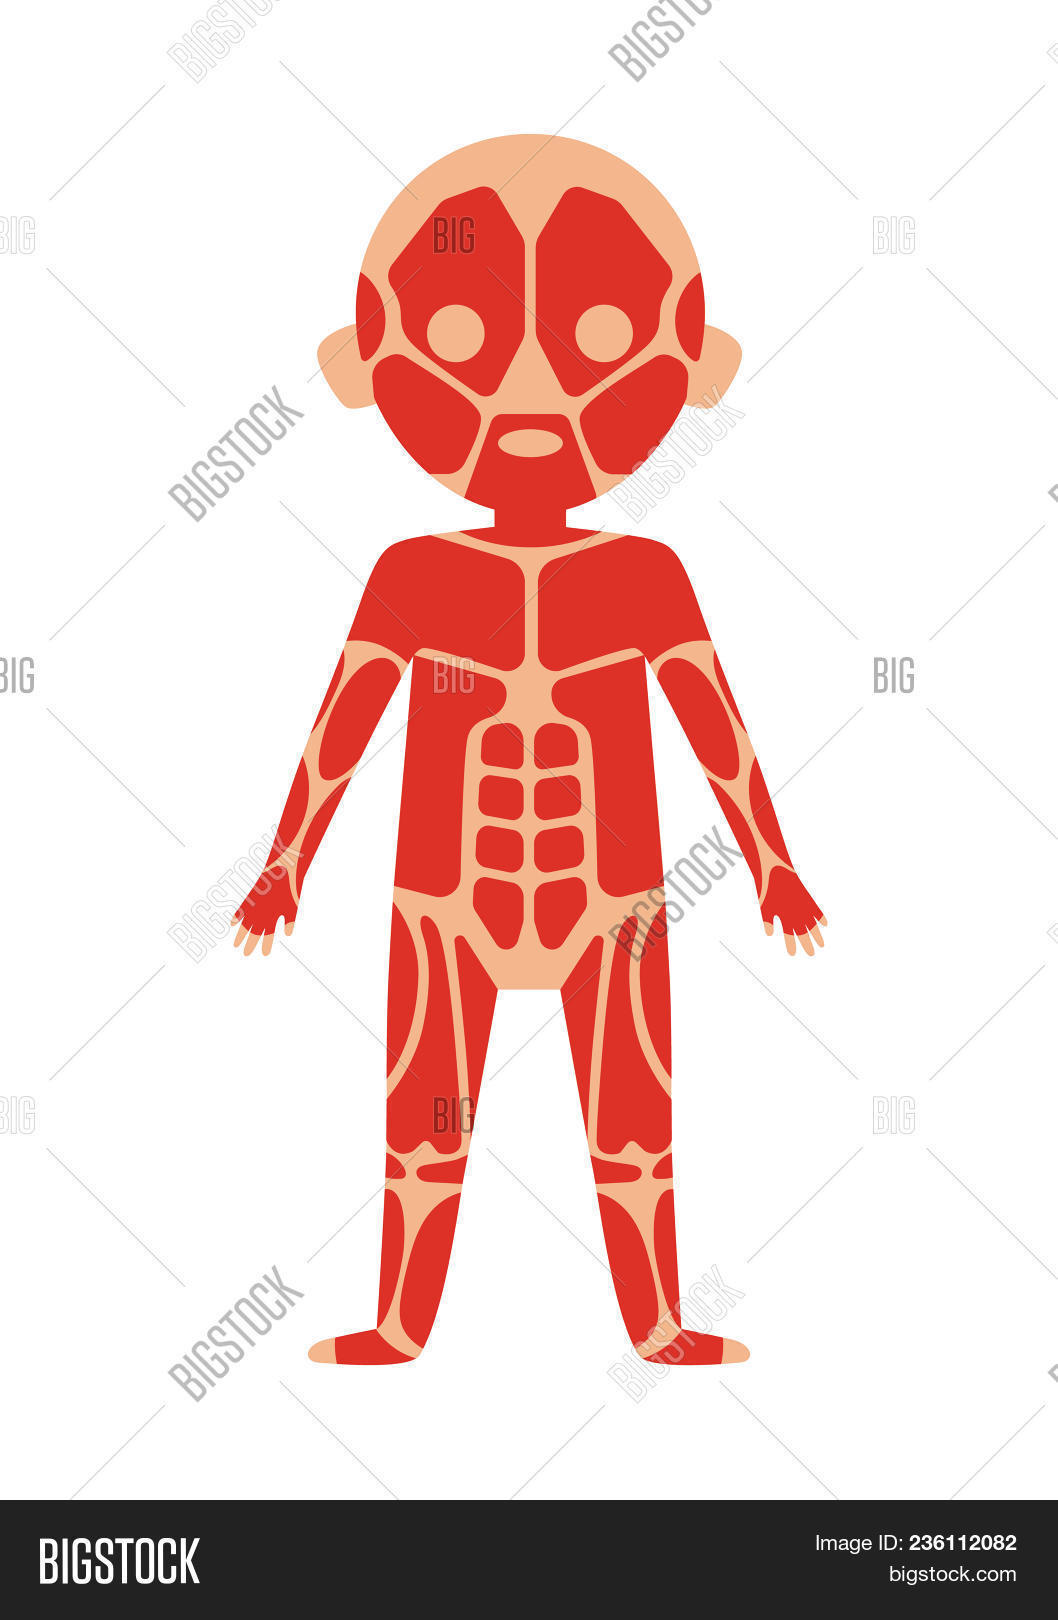 Boy Body Anatomy Image Photo Free Trial Bigstock